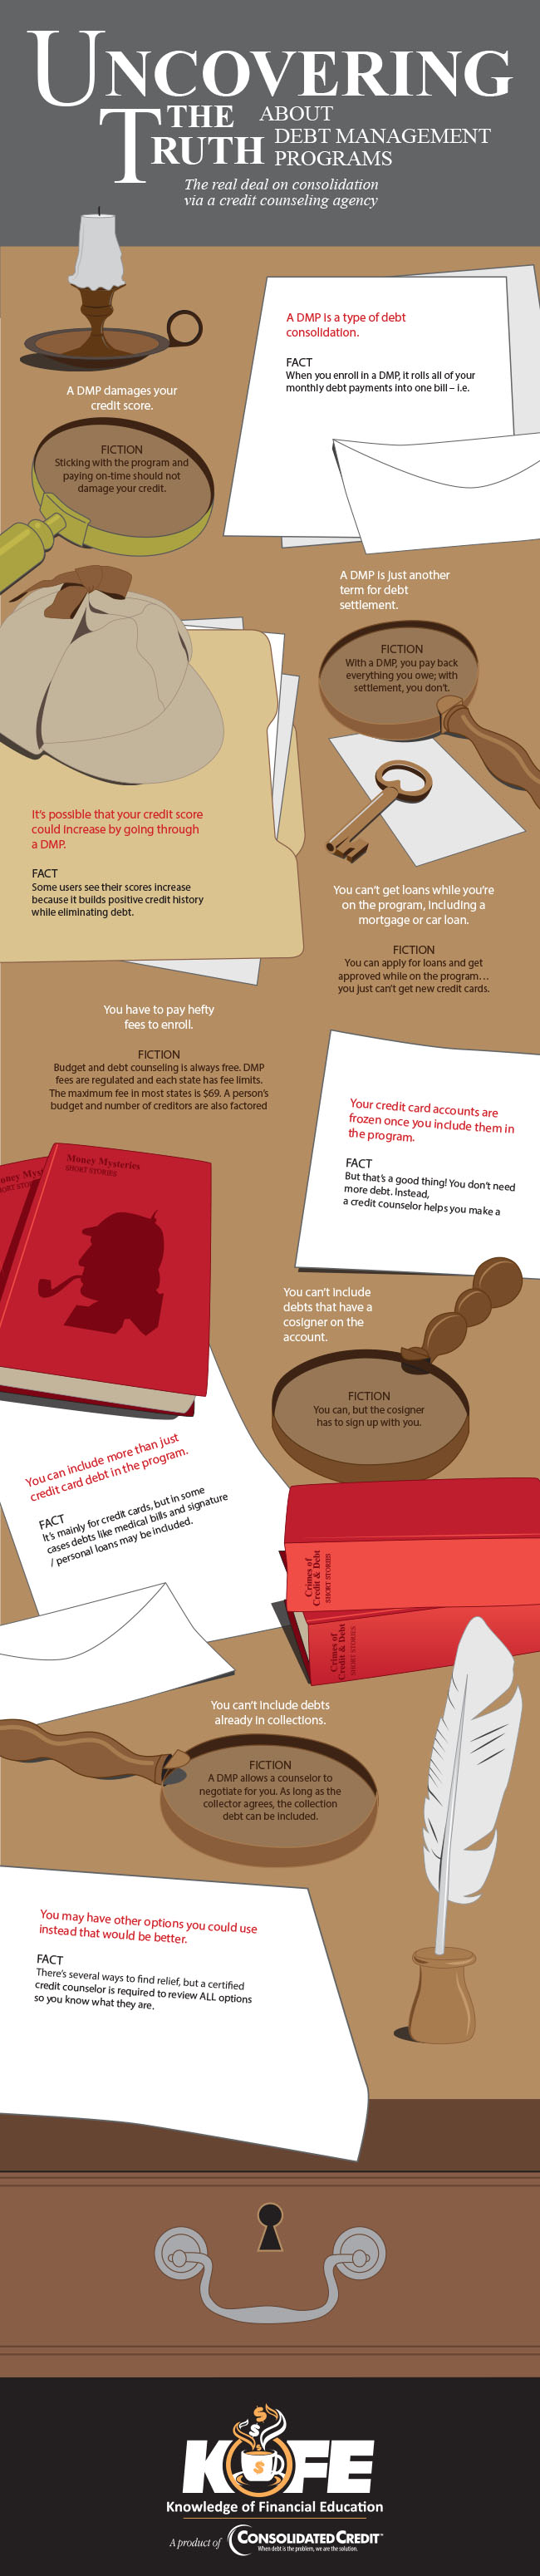 Uncovering the Truth about Debt Management Programs infographic